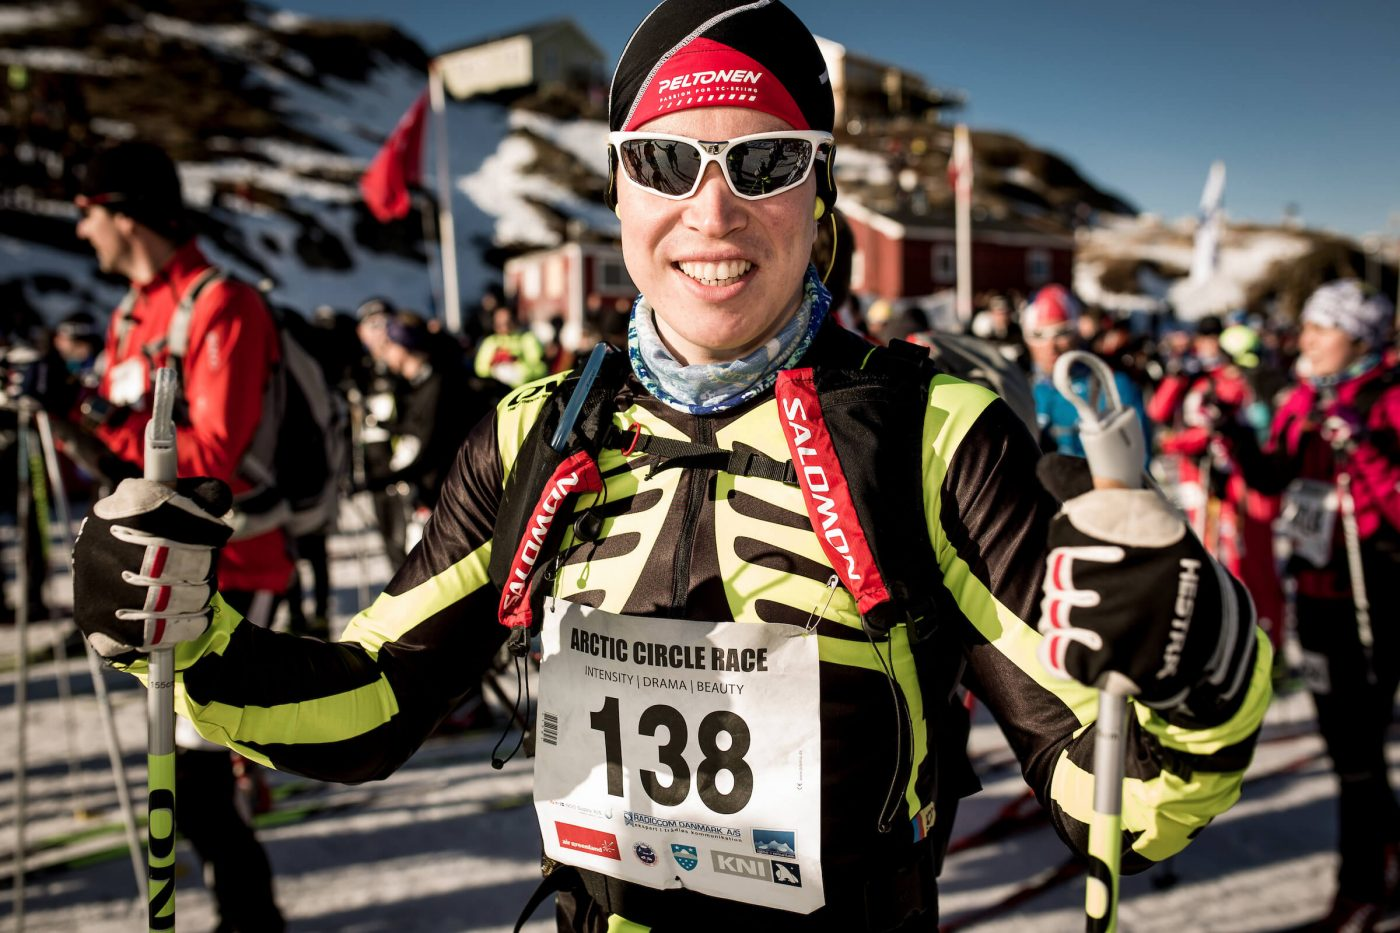 Arctic Circle Race skier preparing for the race on day 1. Photo by Mads Pihl, Visit Greenland